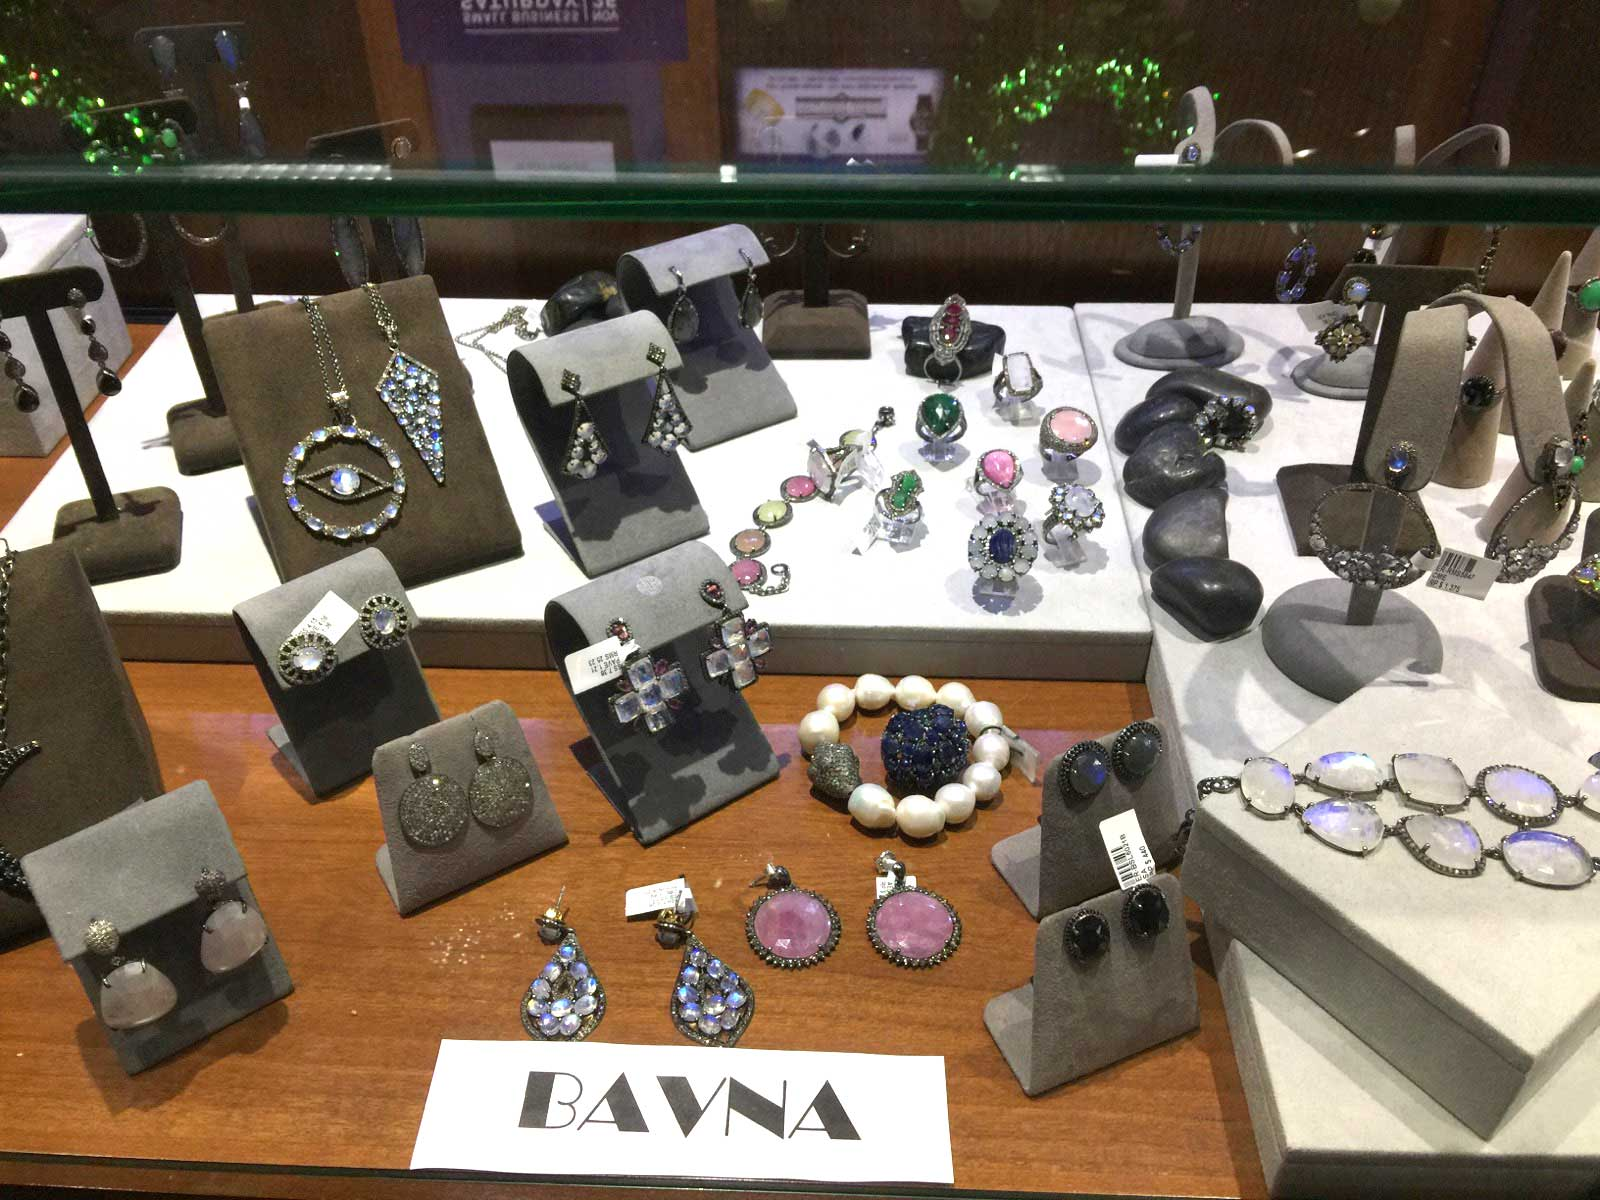 Bavna Jewlery Line at East Towne Jewelers in Mequon WI